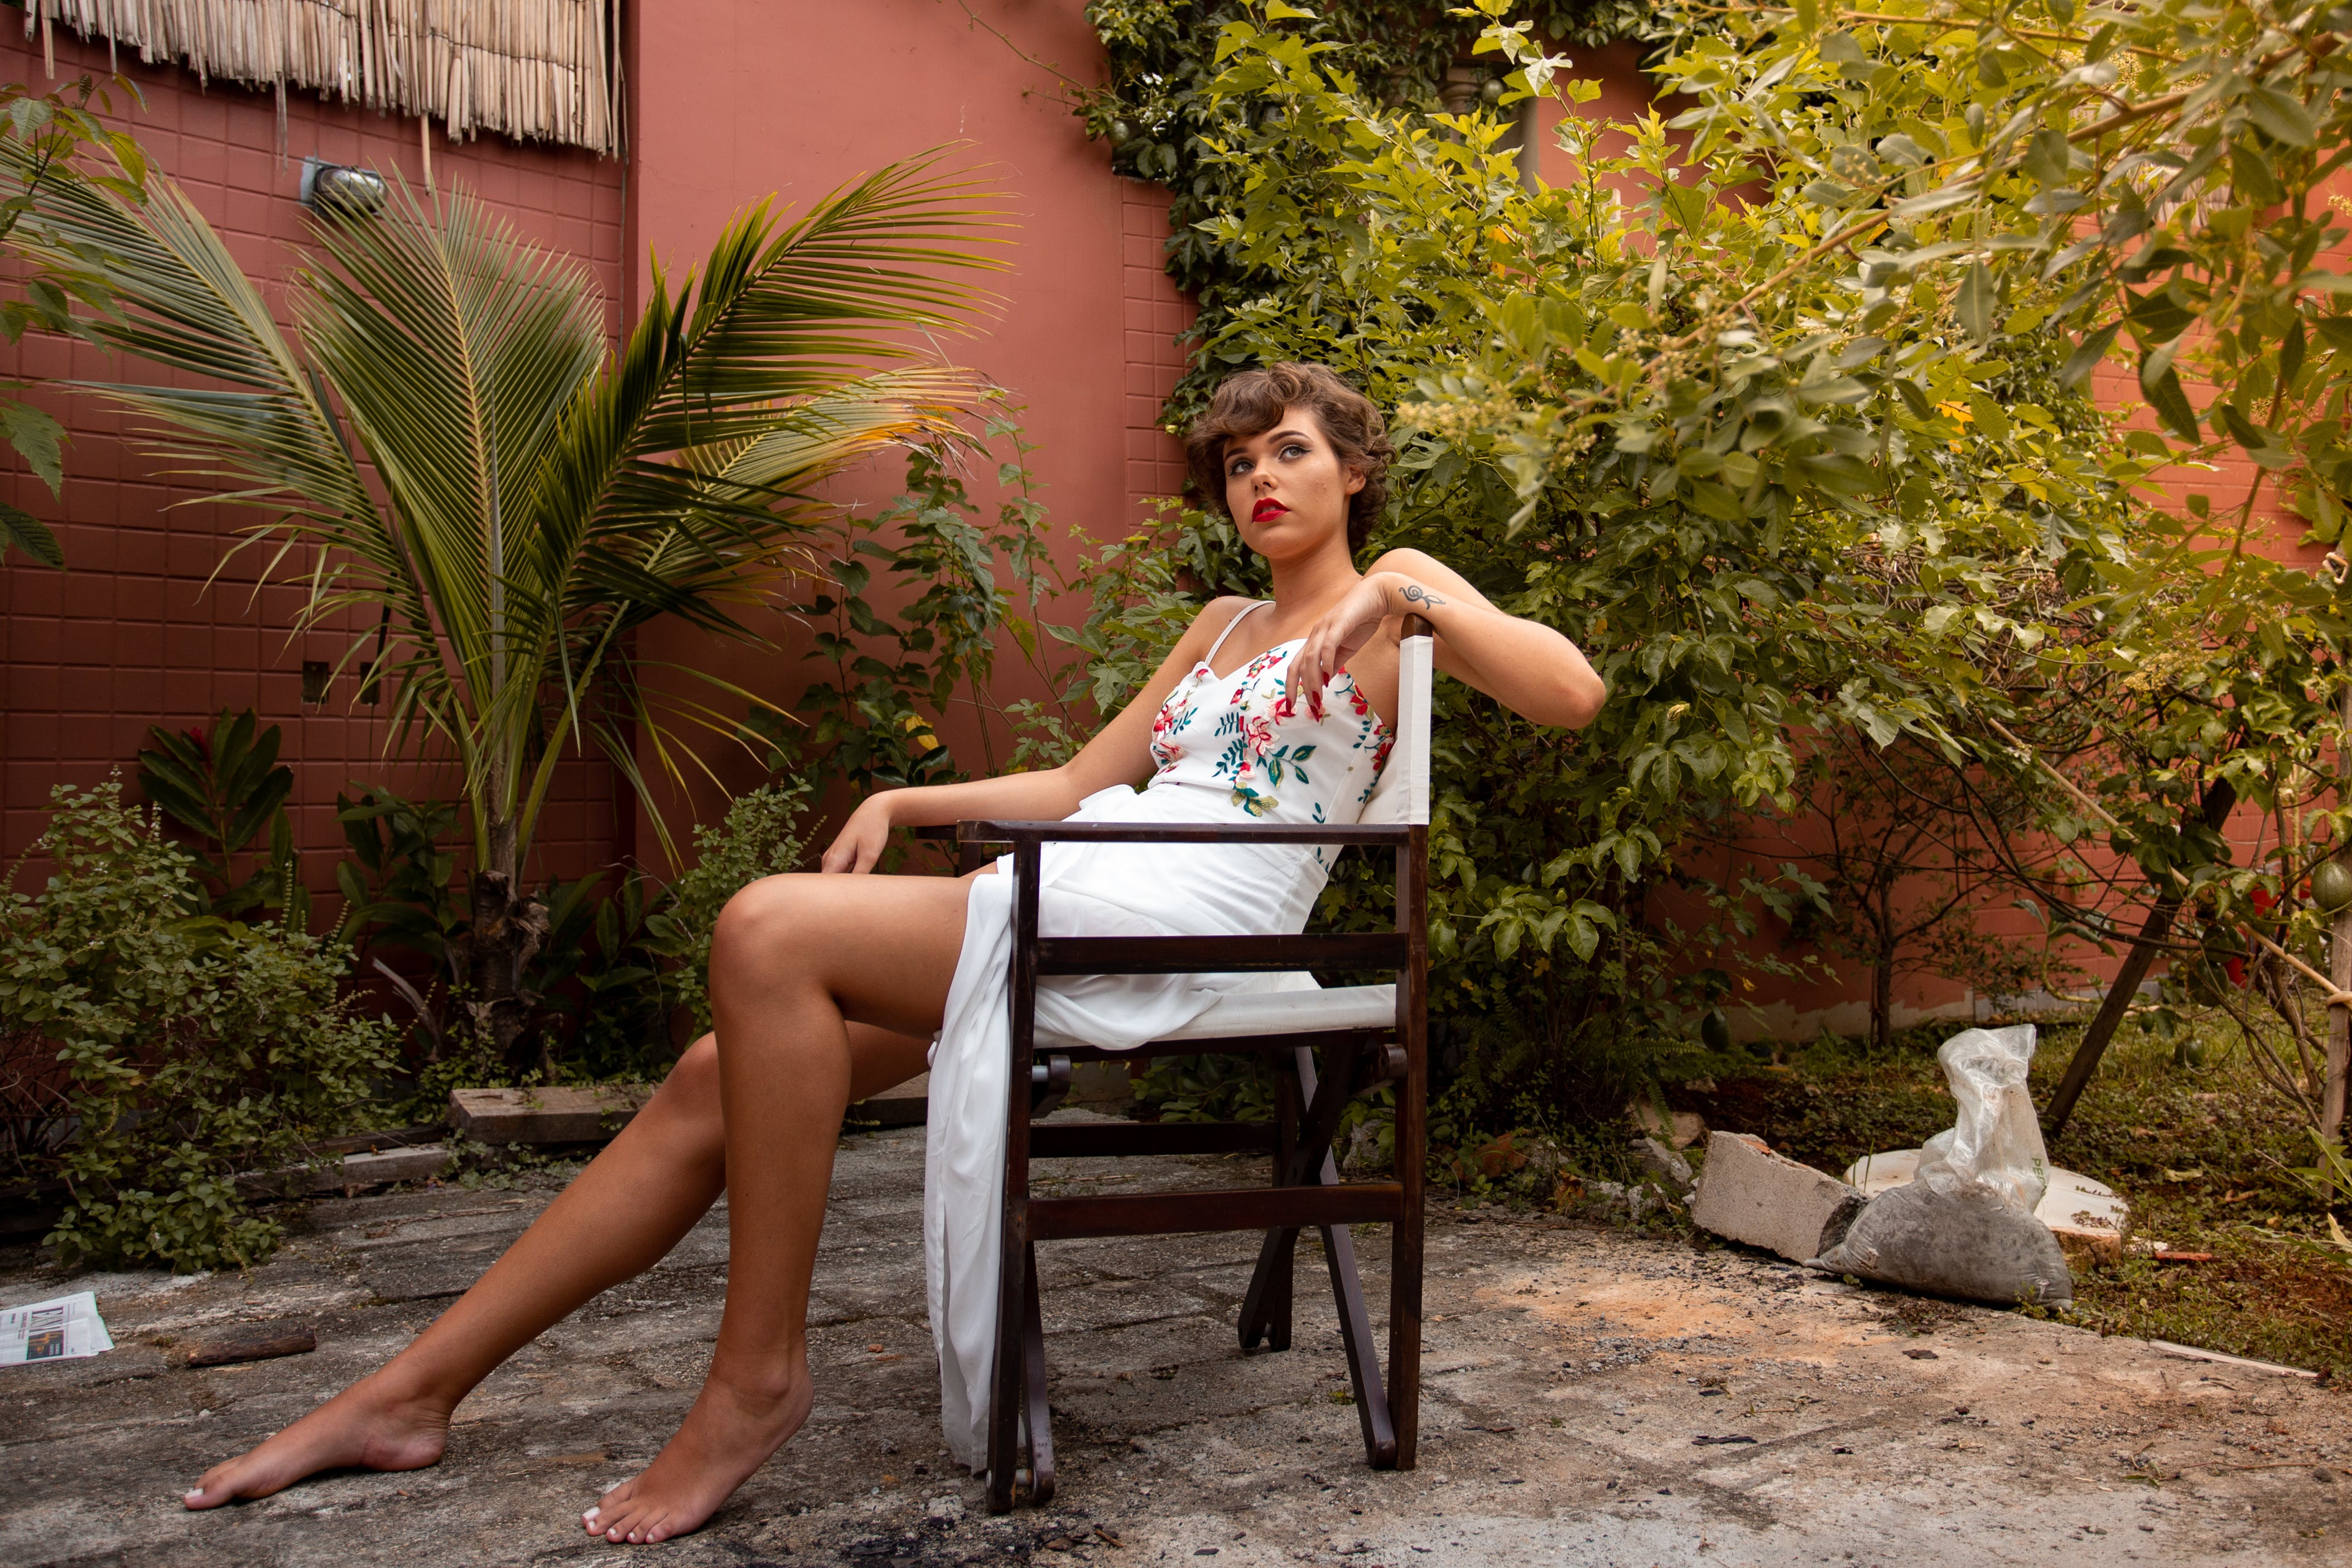 Woman Sitting on White and Brown Wooden Chair